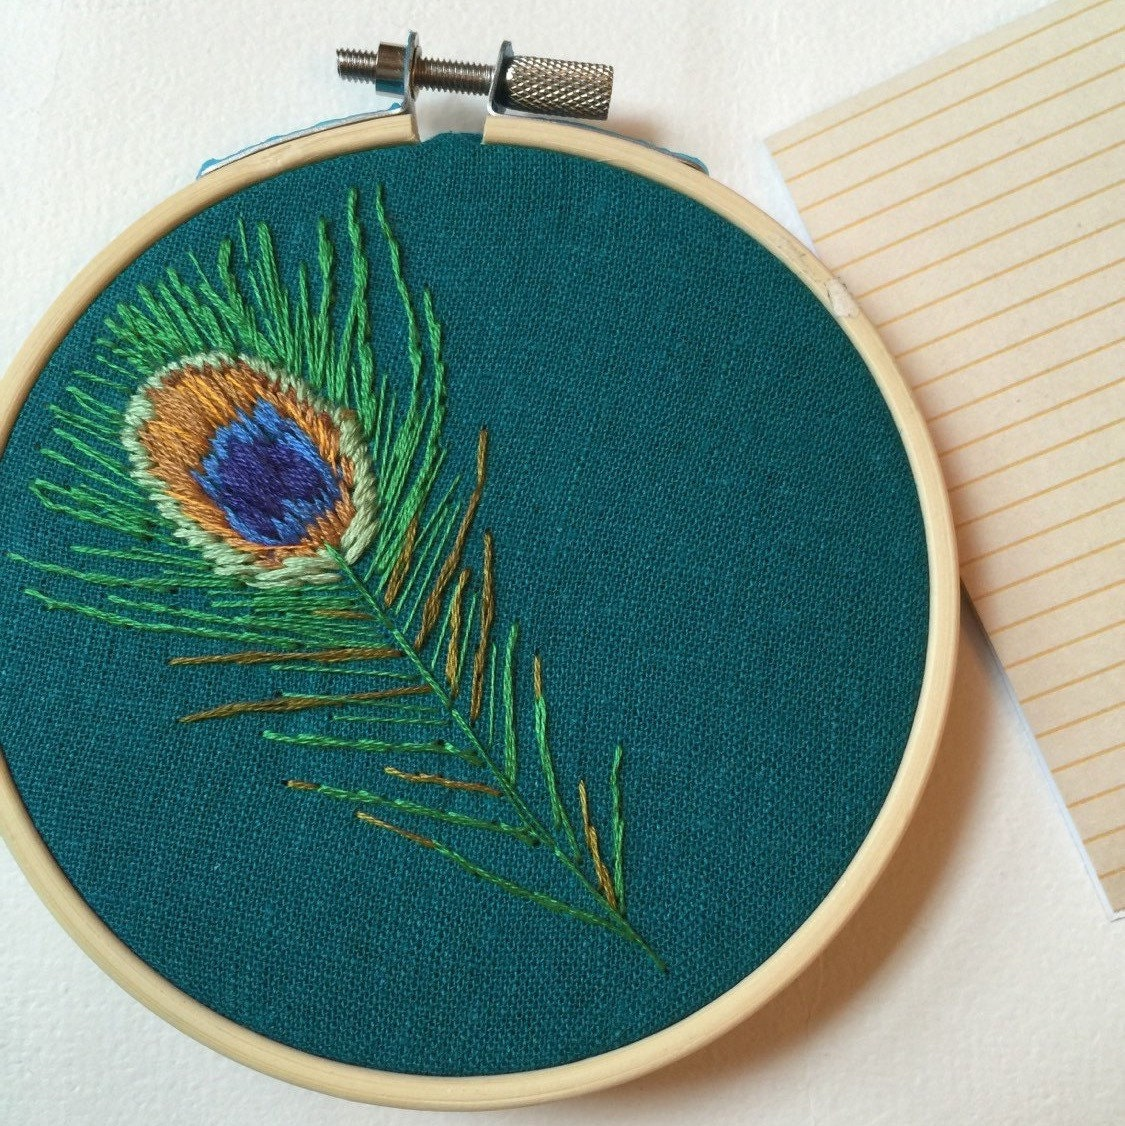 Peacock feather embroidery hoop art turquoise wall